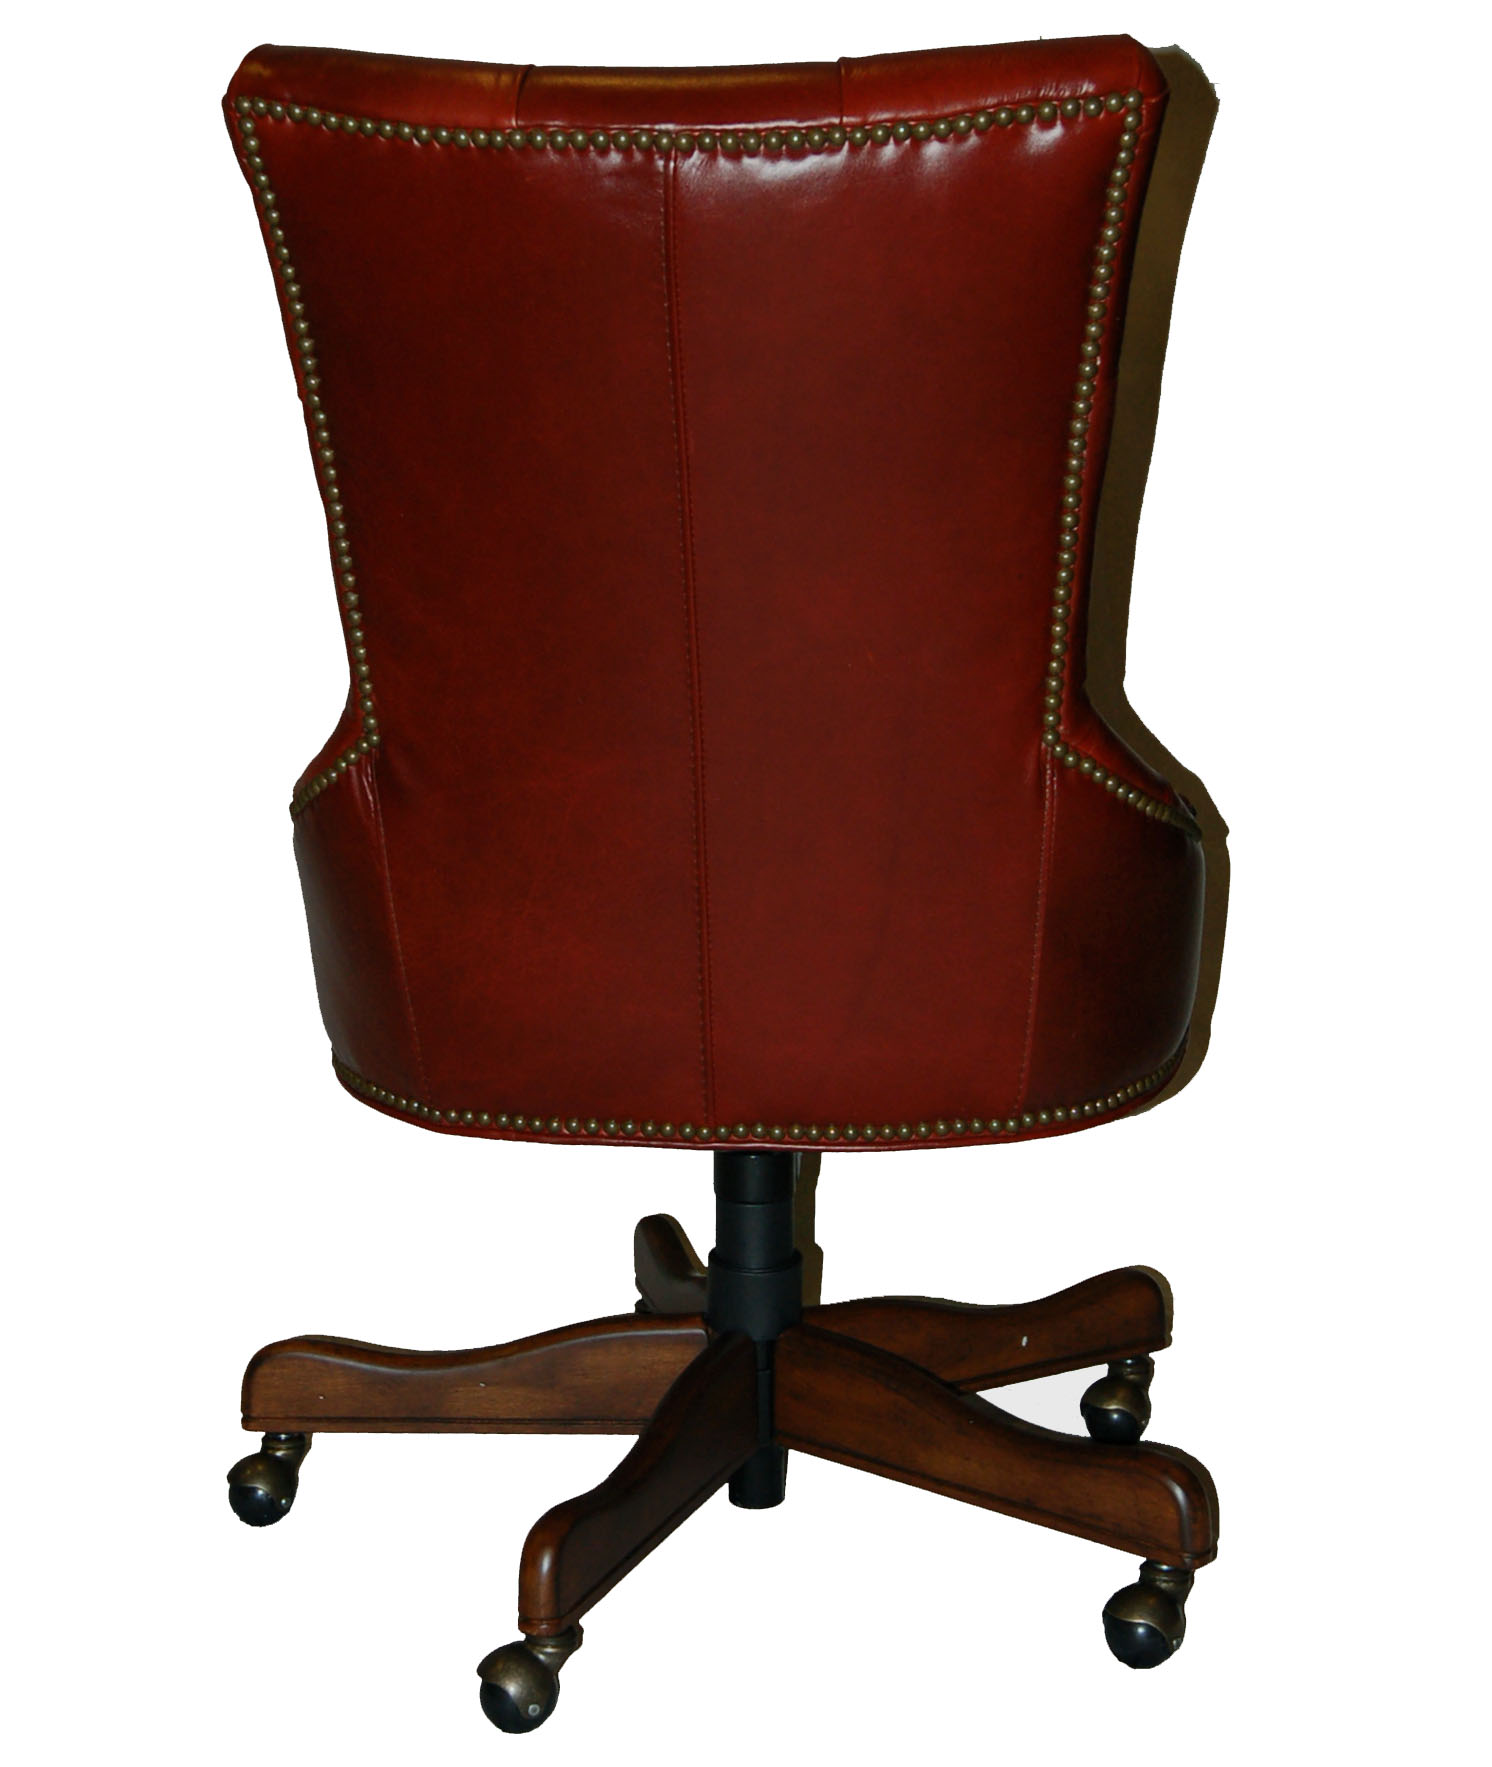 leather desk chairs bedroom chair freedom red executive office ebay